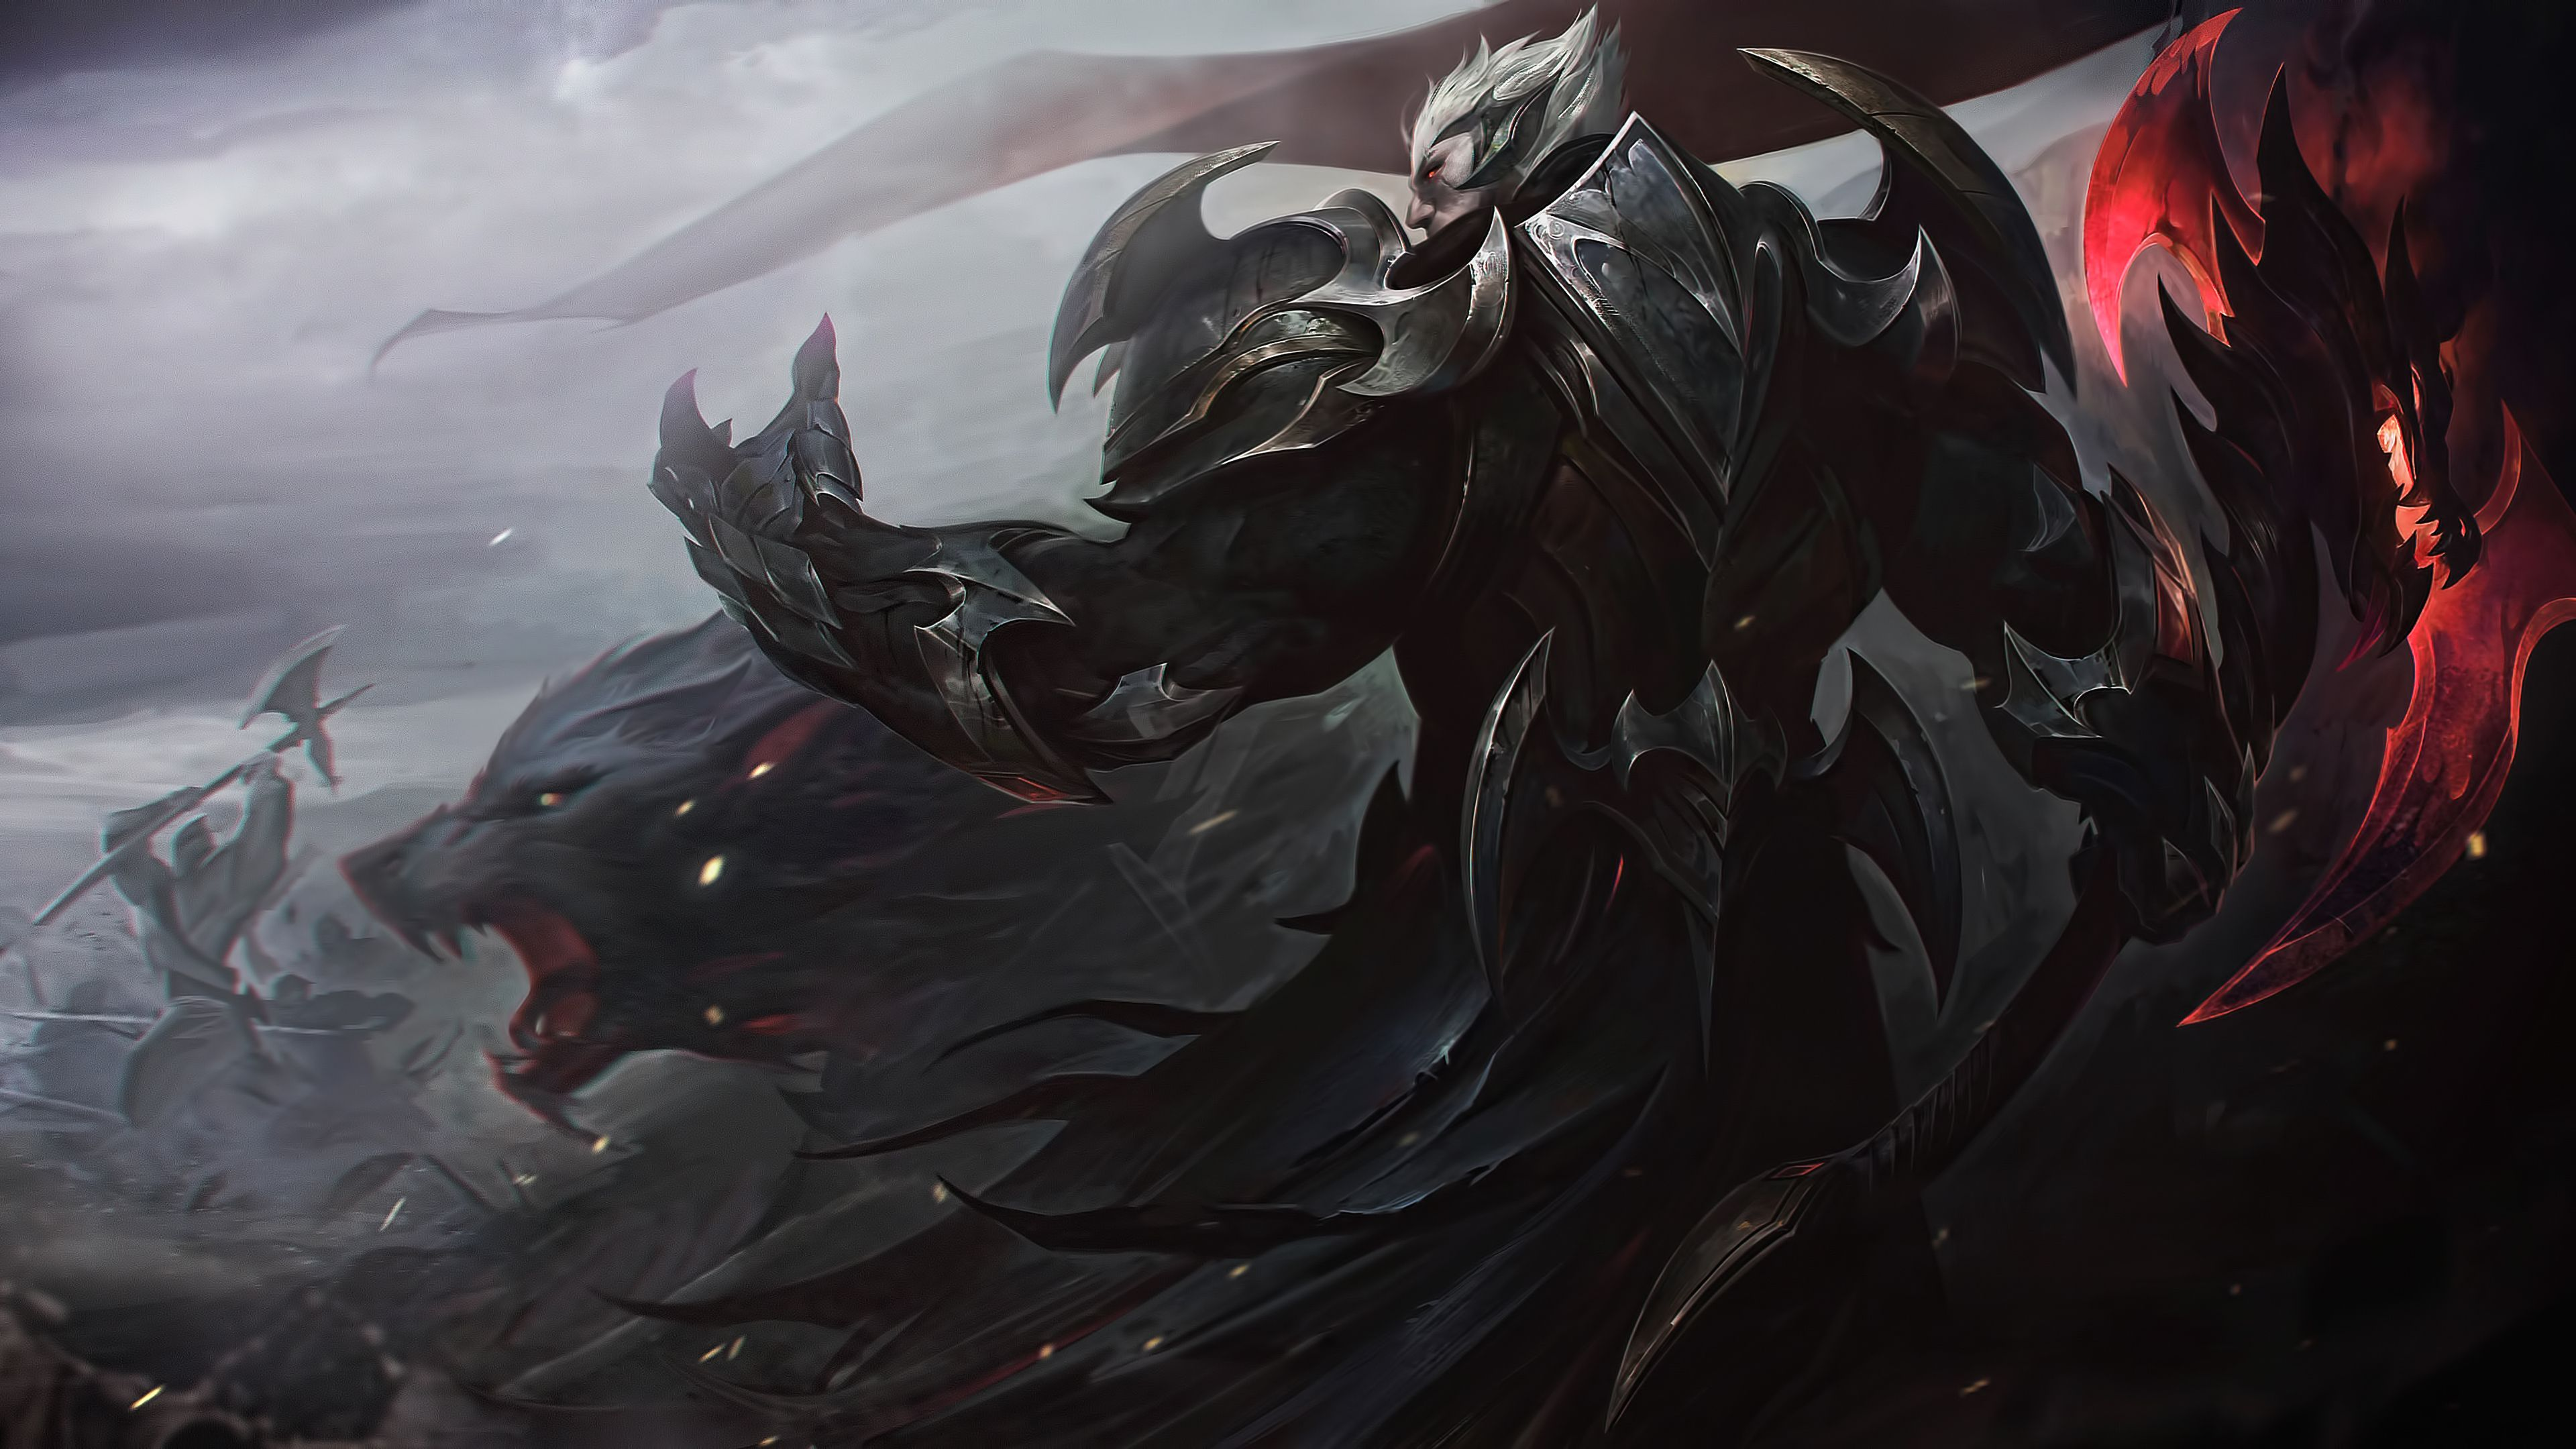 Darius League Of Legends 4k League Of Legends Wallpapers Hd Wallpapers Games Wallp Champions League Of Legends League Of Legends Characters League Of Legends